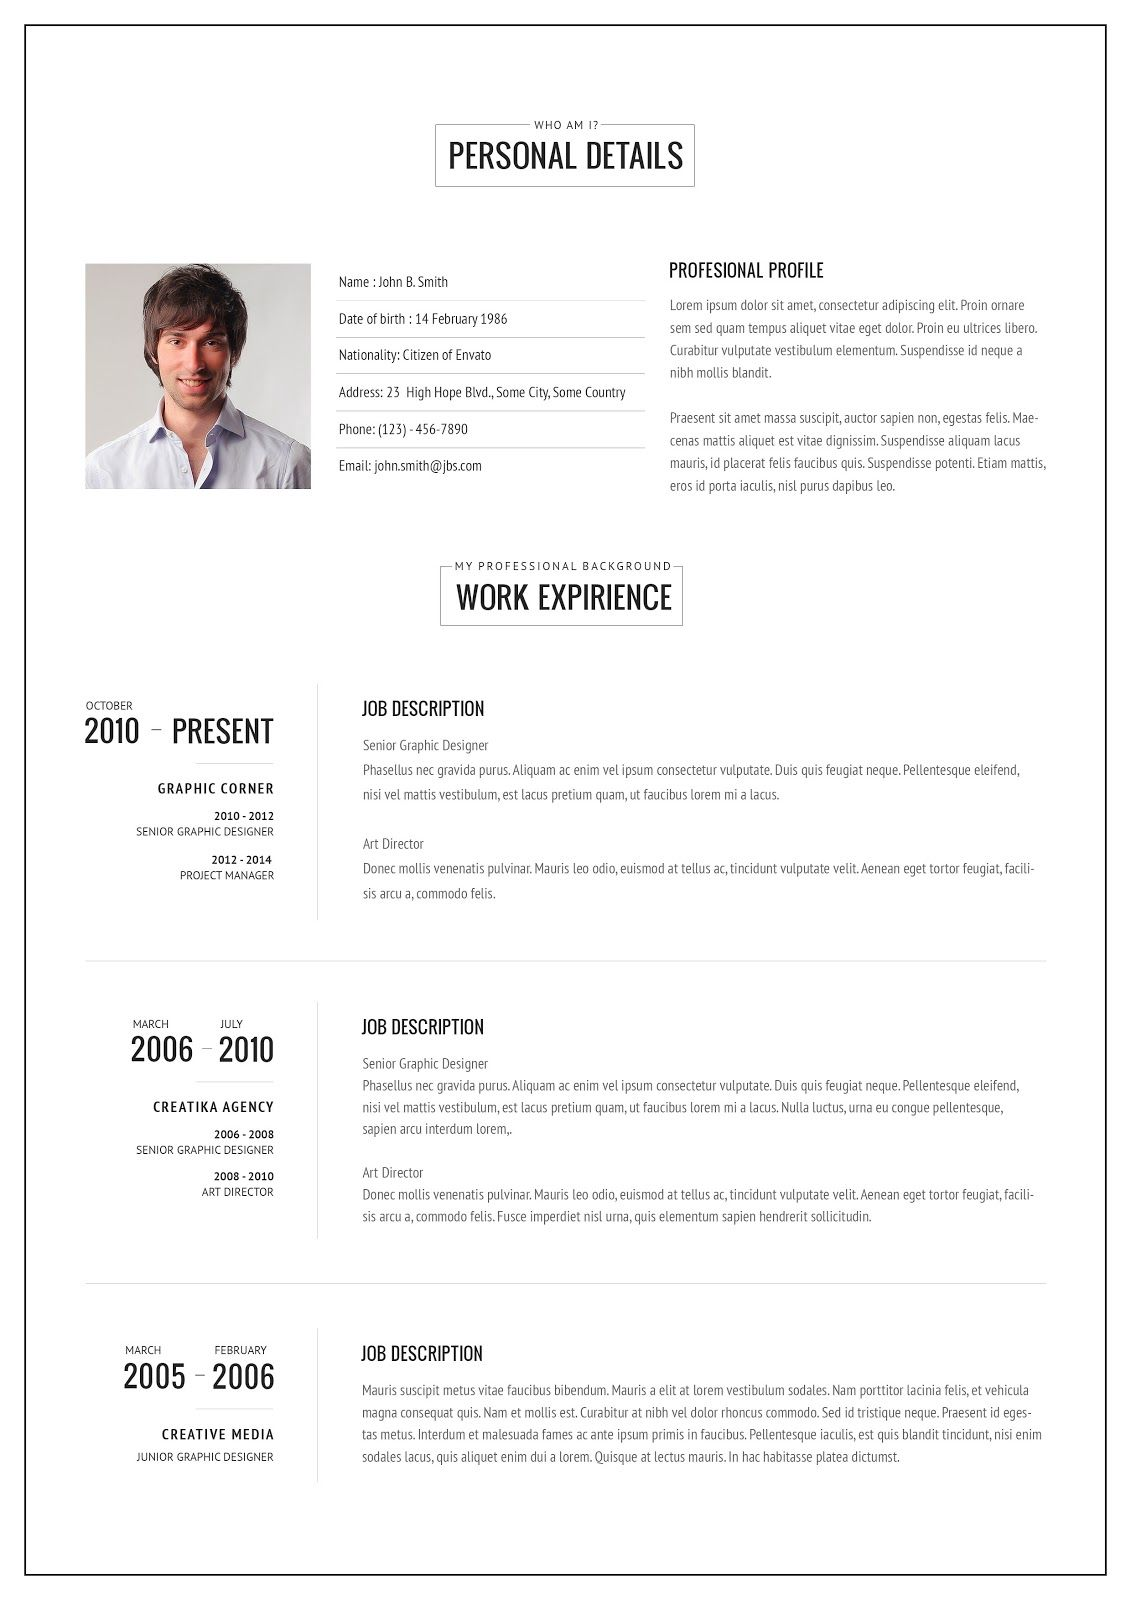 Resume Templates and Its Importance | Resume | Pinterest